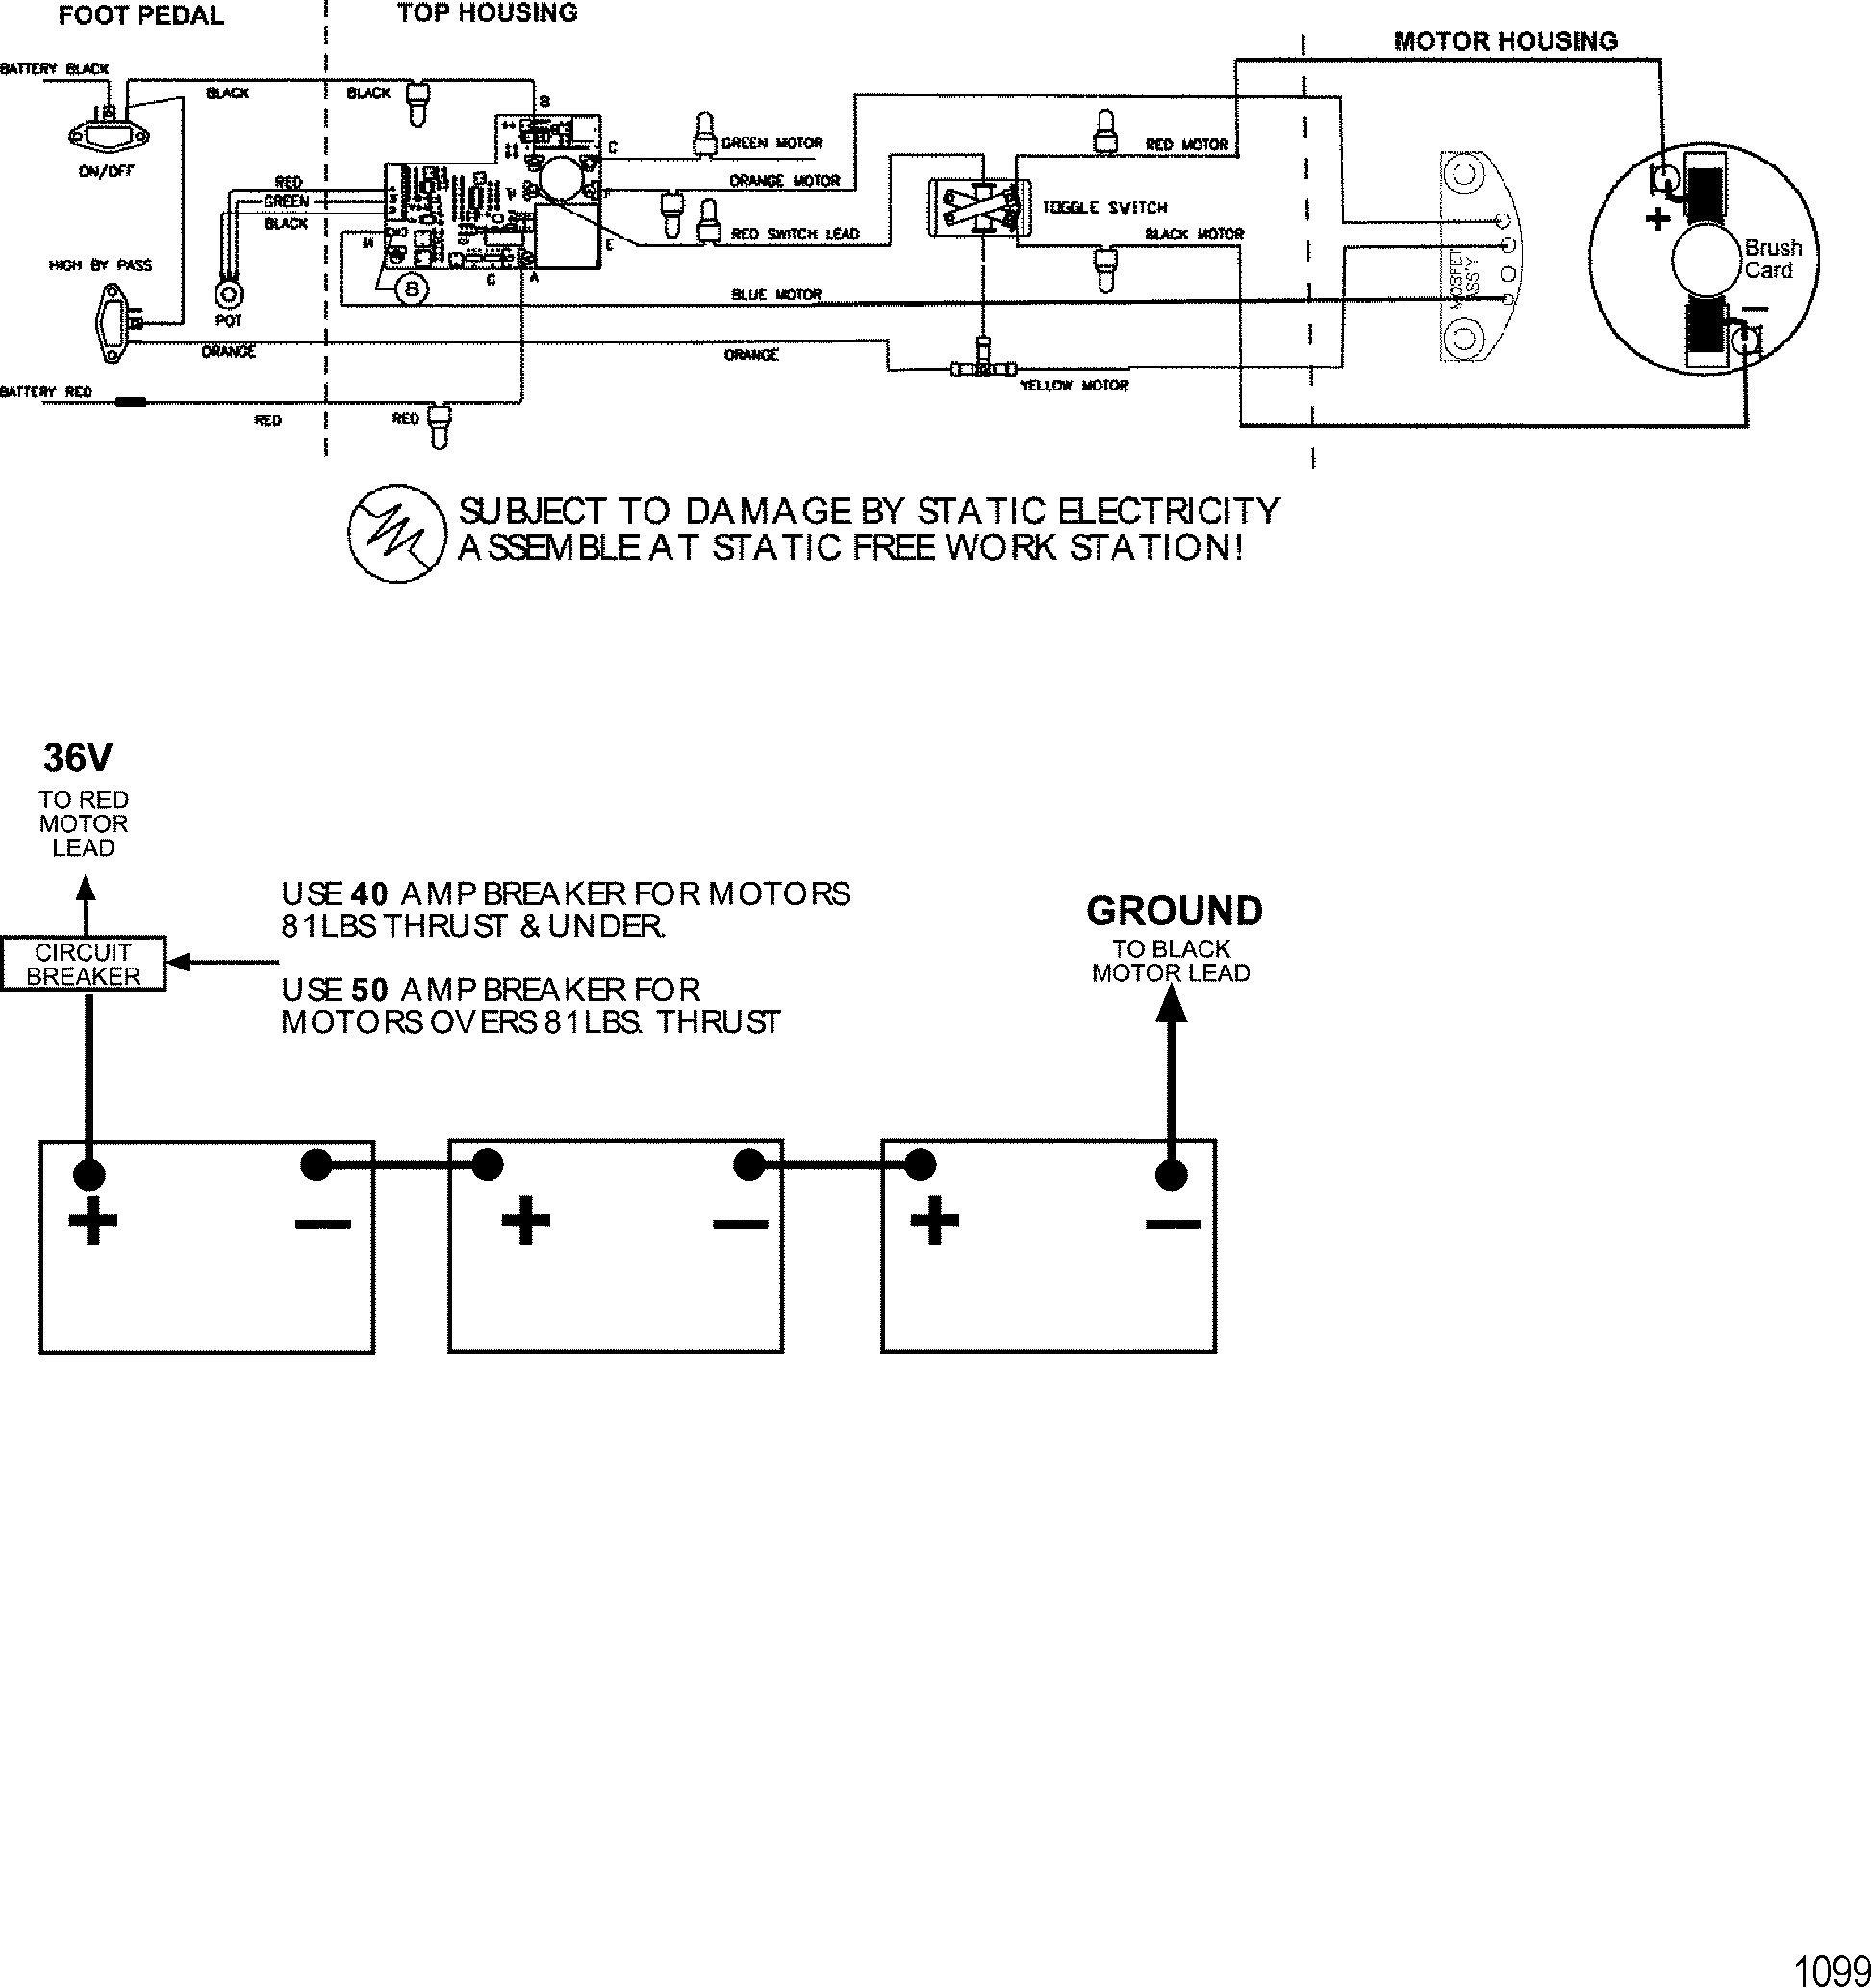 1099 motorguide wiring diagram motorguide foot pedal wiring diagram at mifinder.co